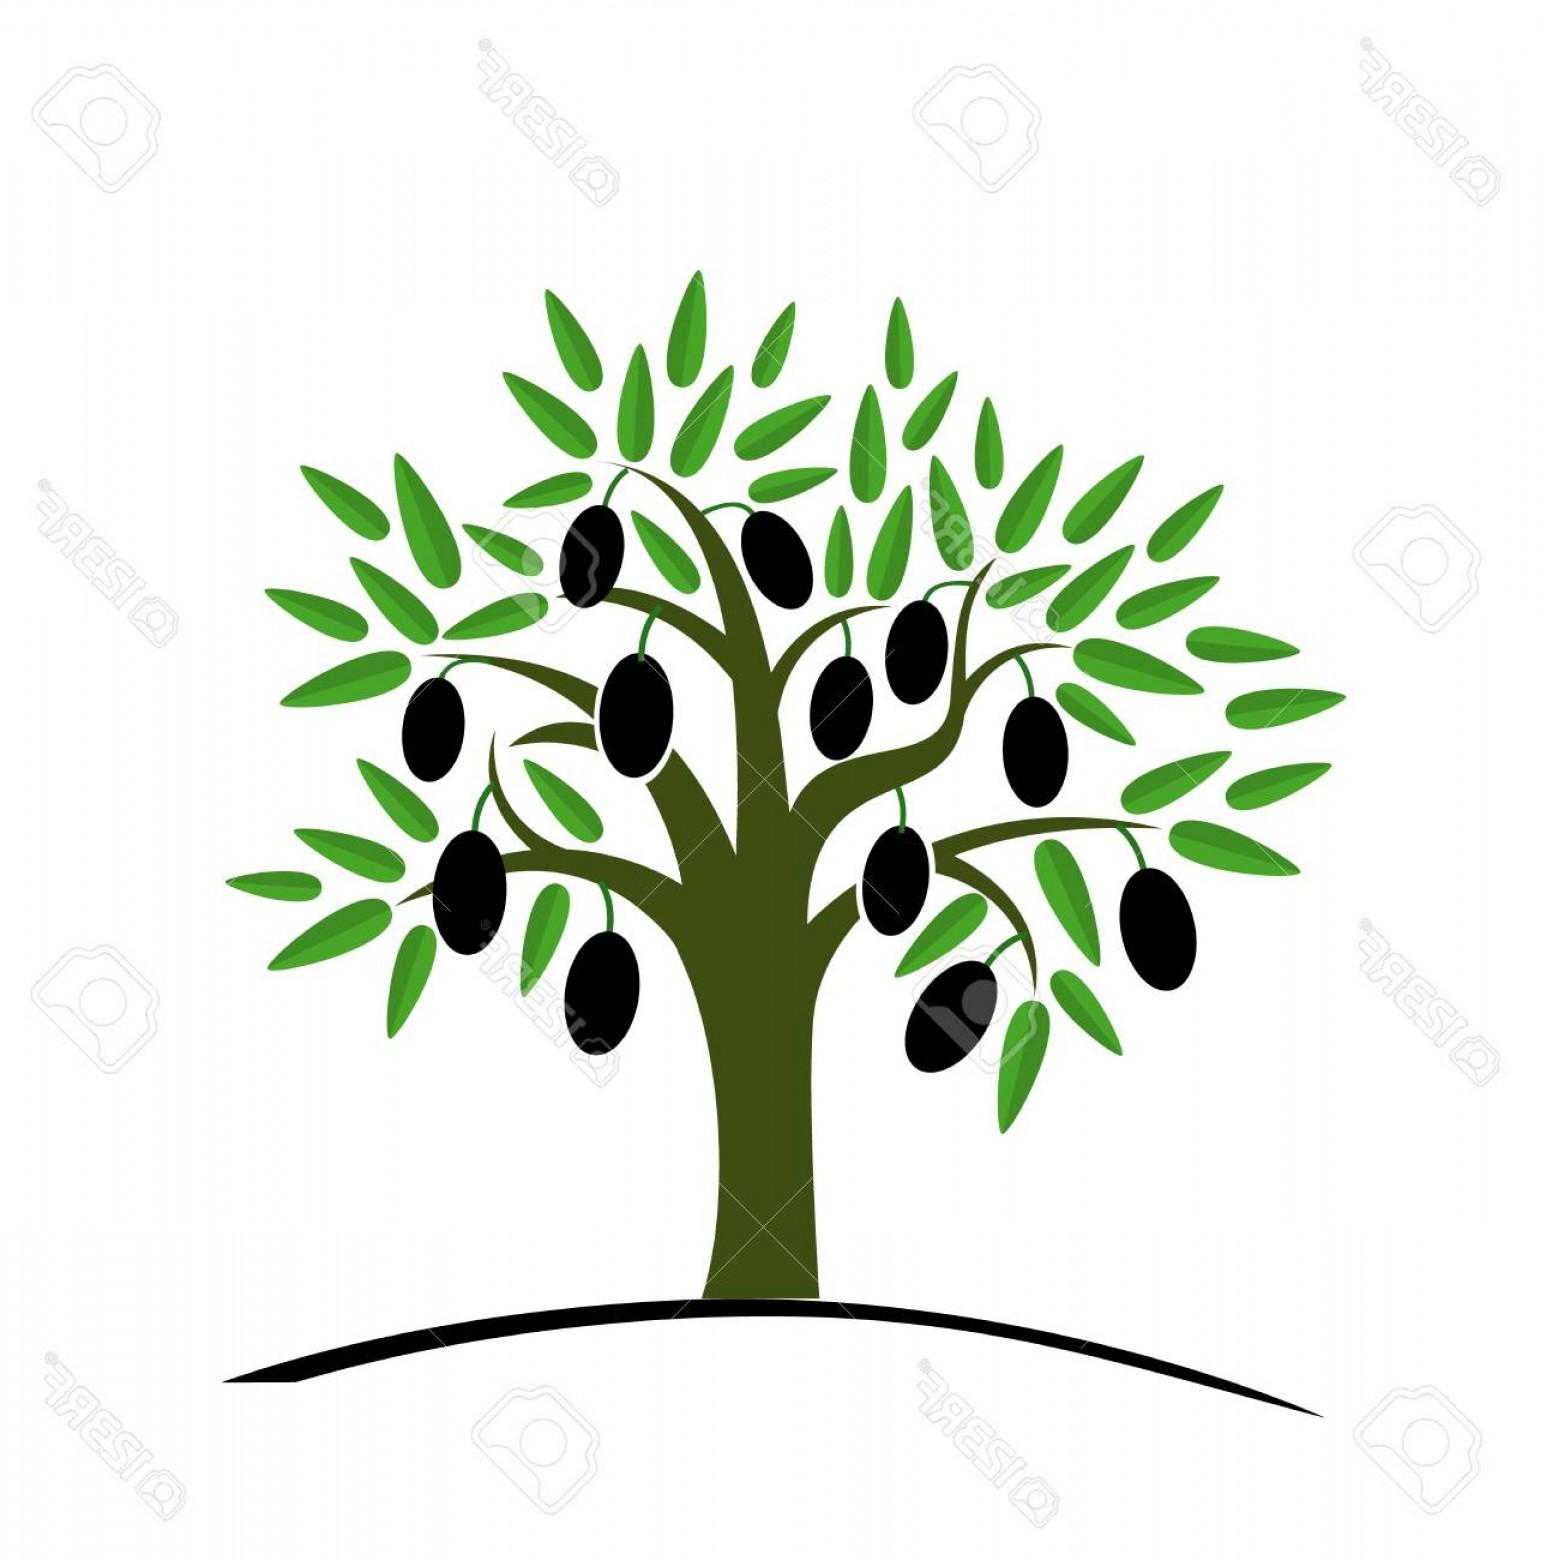 Olive Vector: Photostock Vector Olive Tree With Green Leaves Tree With Black Olives Vector Illustration On A White Background Flat S